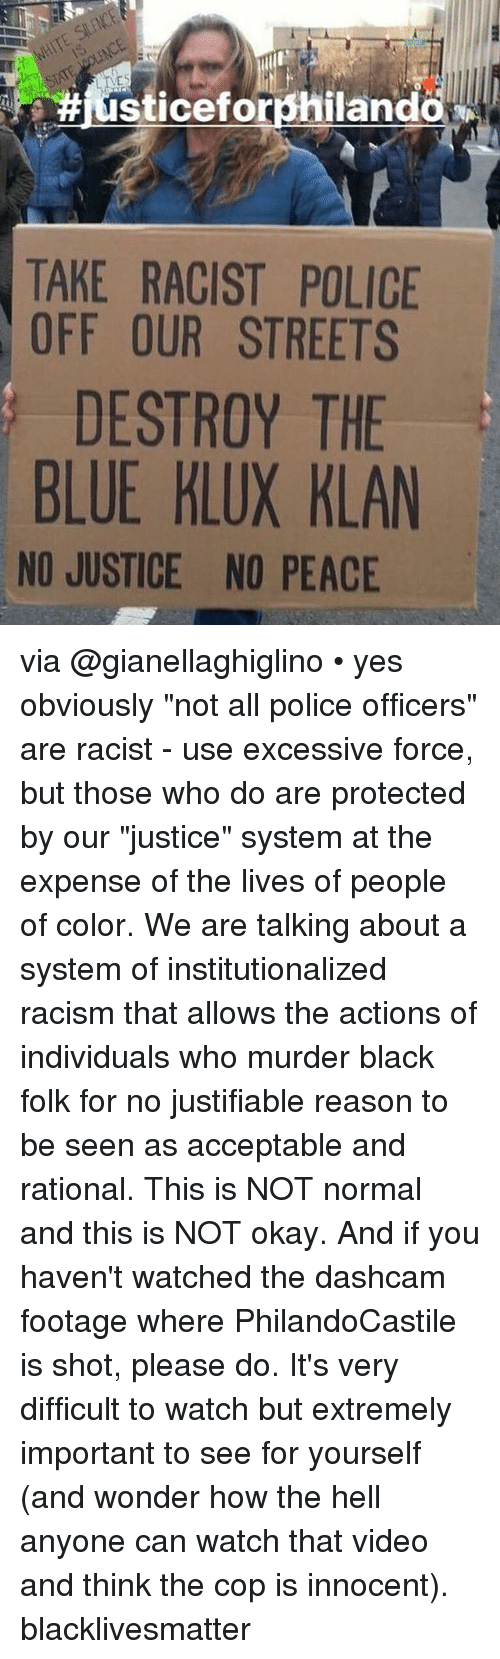 """Institutionalized: IT  #iusticeforphiland  TAKE RACIST POLICE  OFF OUR STREETS  DESTROY THE  BLUE KLUX KLAN  NO JUSTICE NO PEACE via @gianellaghiglino • yes obviously """"not all police officers"""" are racist - use excessive force, but those who do are protected by our """"justice"""" system at the expense of the lives of people of color. We are talking about a system of institutionalized racism that allows the actions of individuals who murder black folk for no justifiable reason to be seen as acceptable and rational. This is NOT normal and this is NOT okay. And if you haven't watched the dashcam footage where PhilandoCastile is shot, please do. It's very difficult to watch but extremely important to see for yourself (and wonder how the hell anyone can watch that video and think the cop is innocent). blacklivesmatter"""